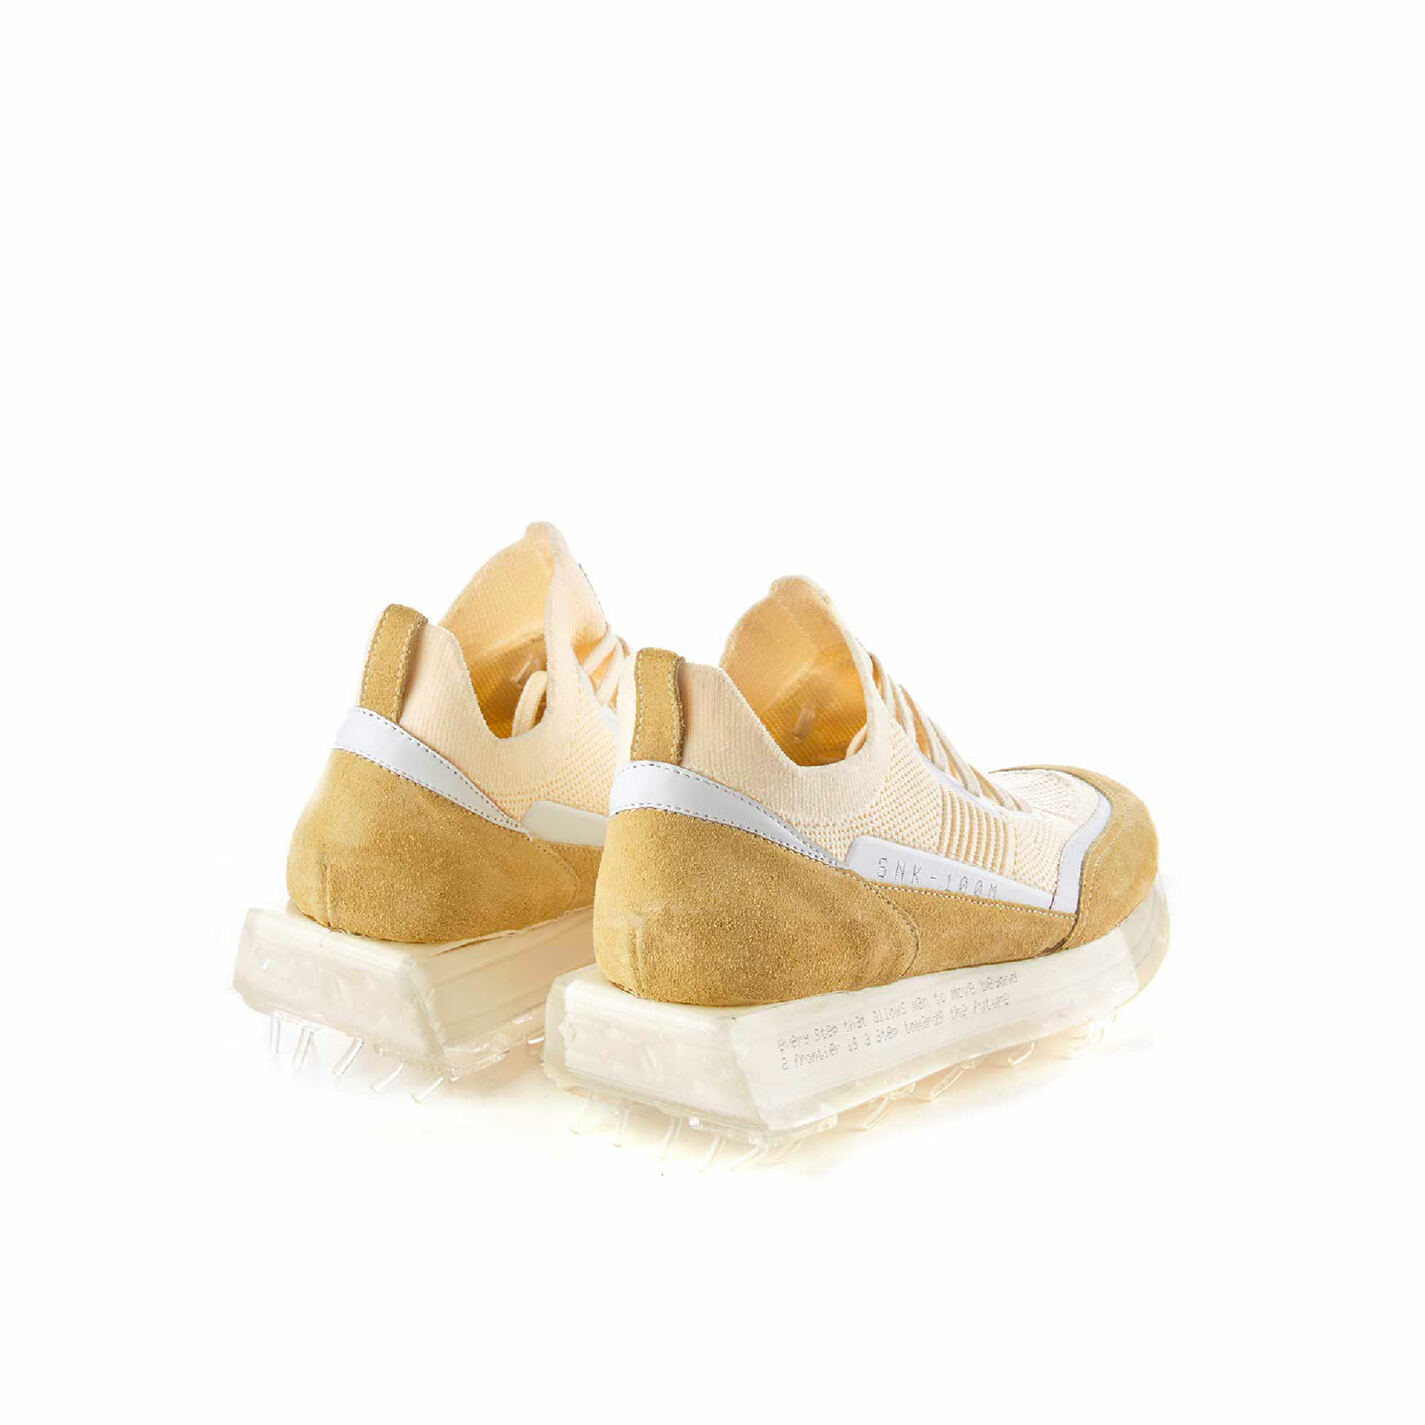 Men's SNK-100M trainers in beige technical knit fabric